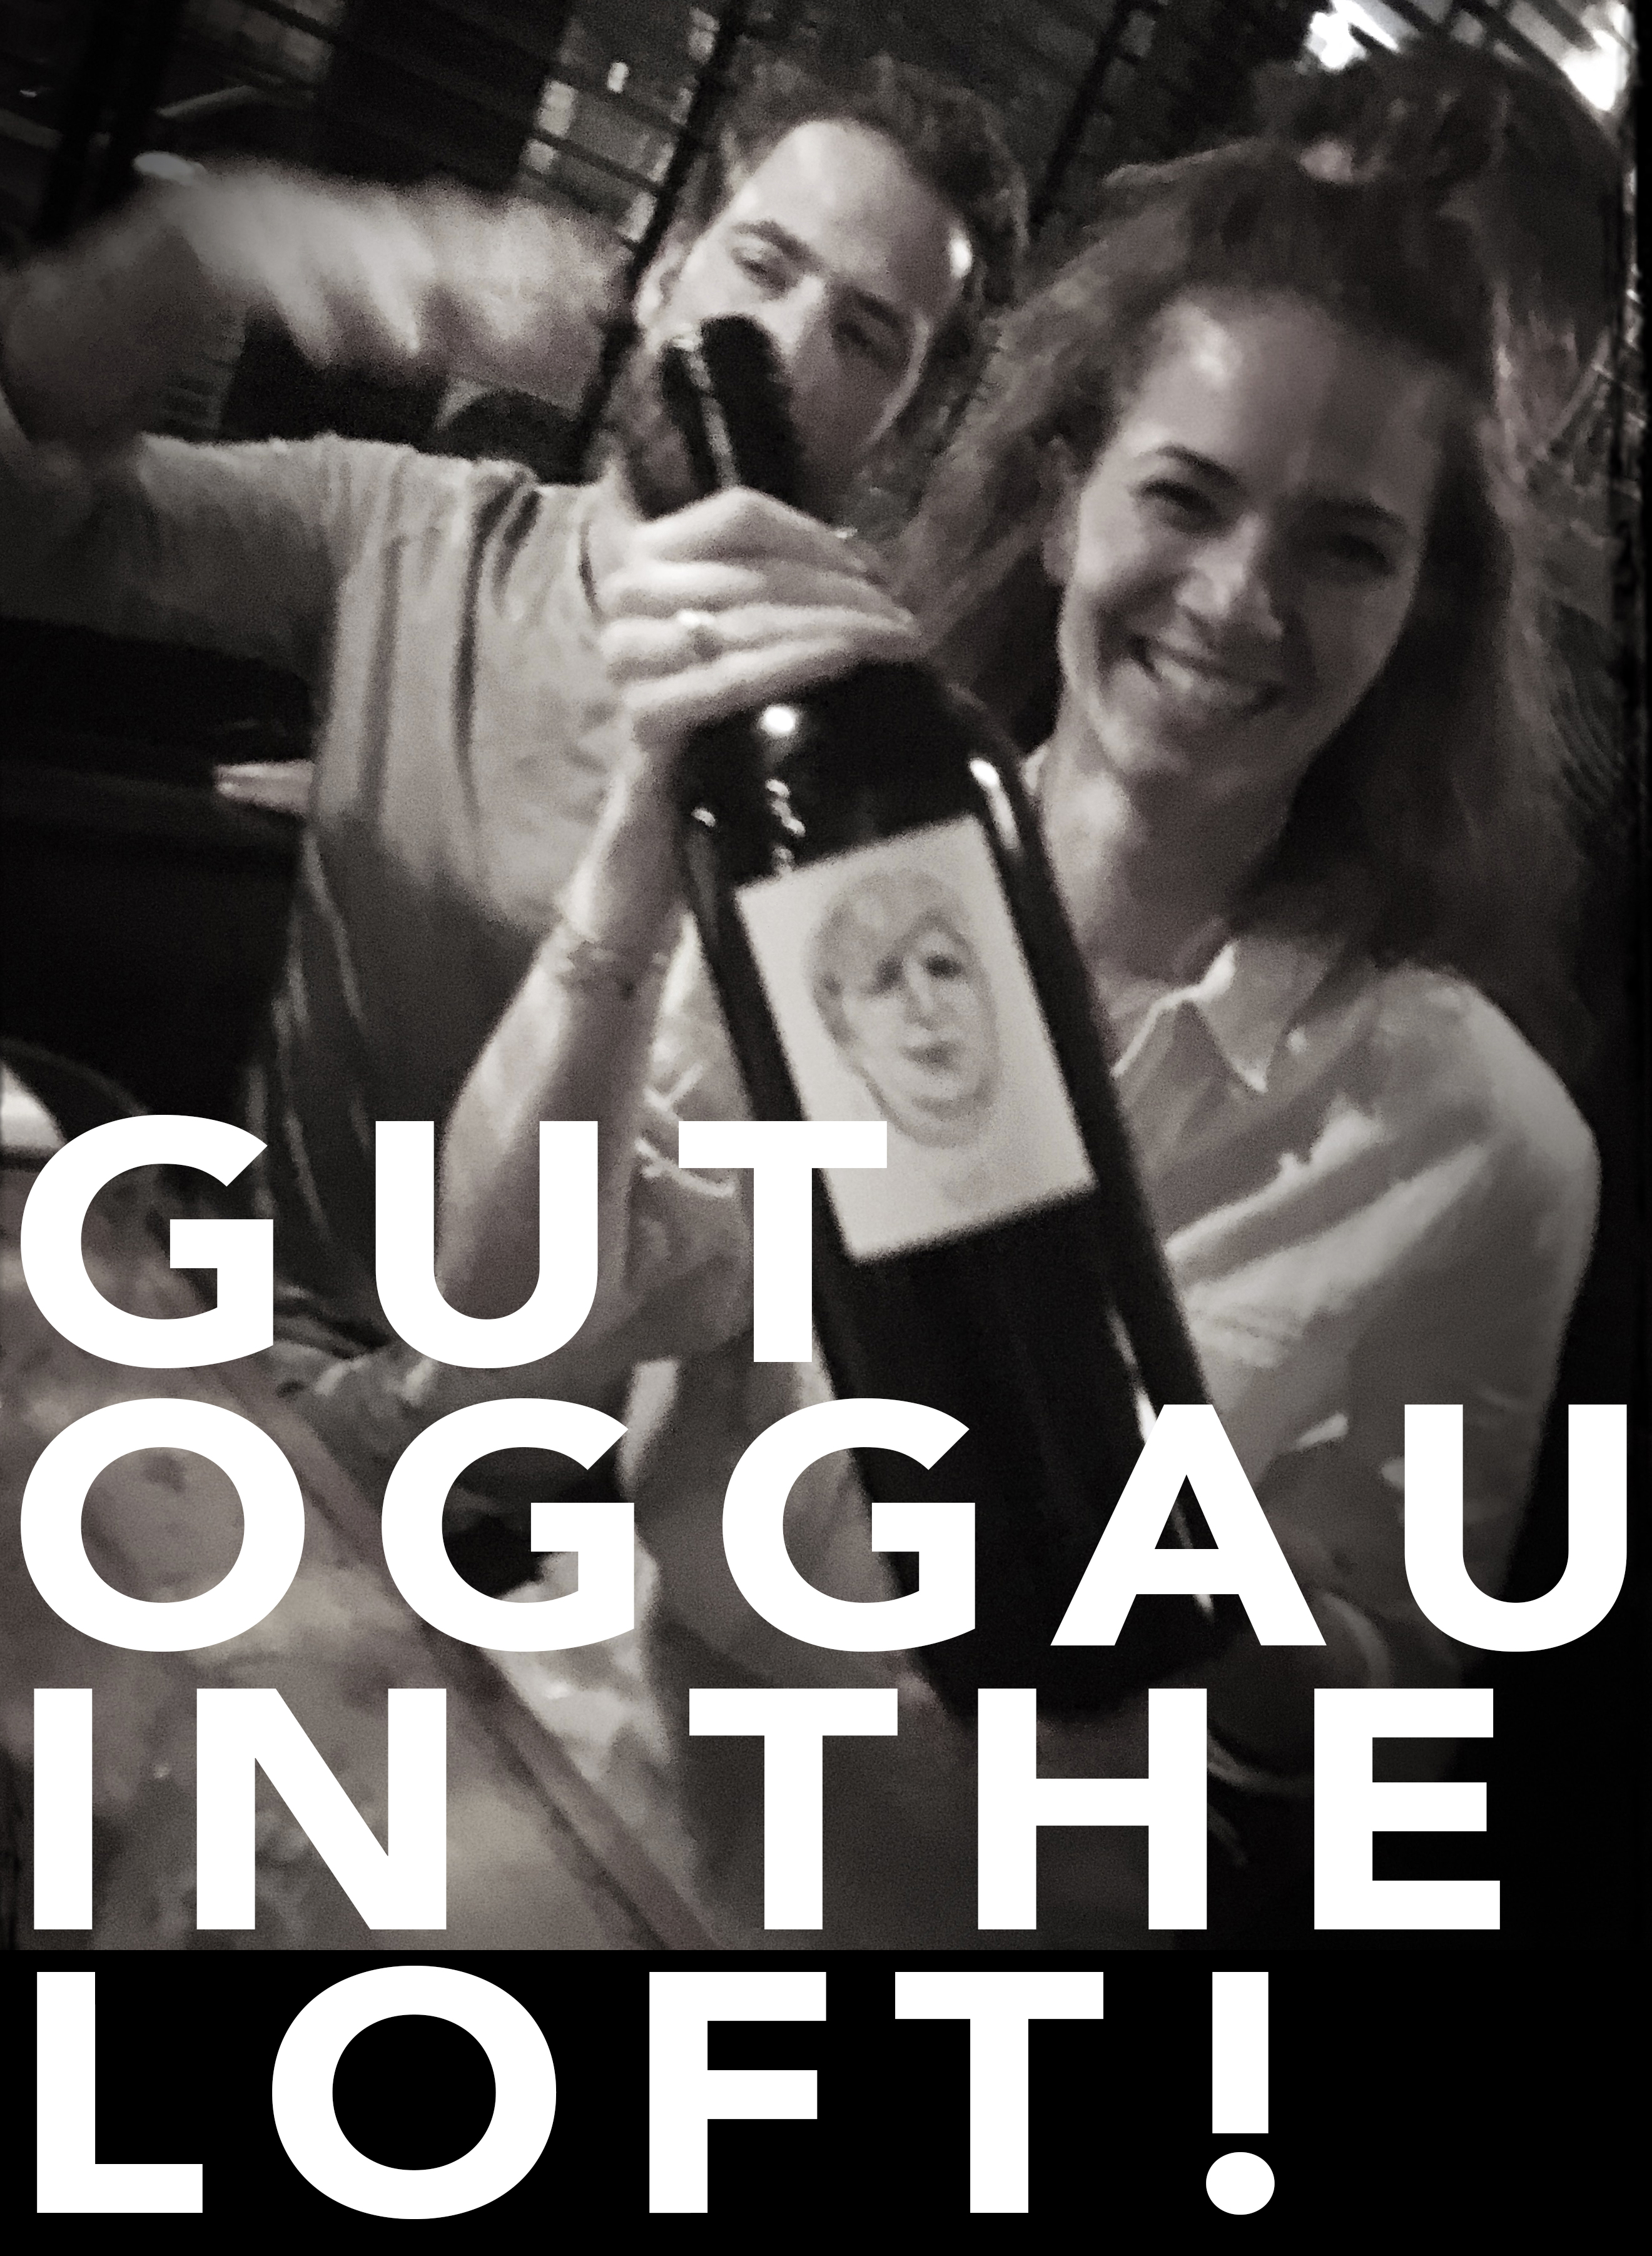 Gut Oggau and Scholium! An intimate tasting. November 4 at 5 pm at the loft - the scholium project